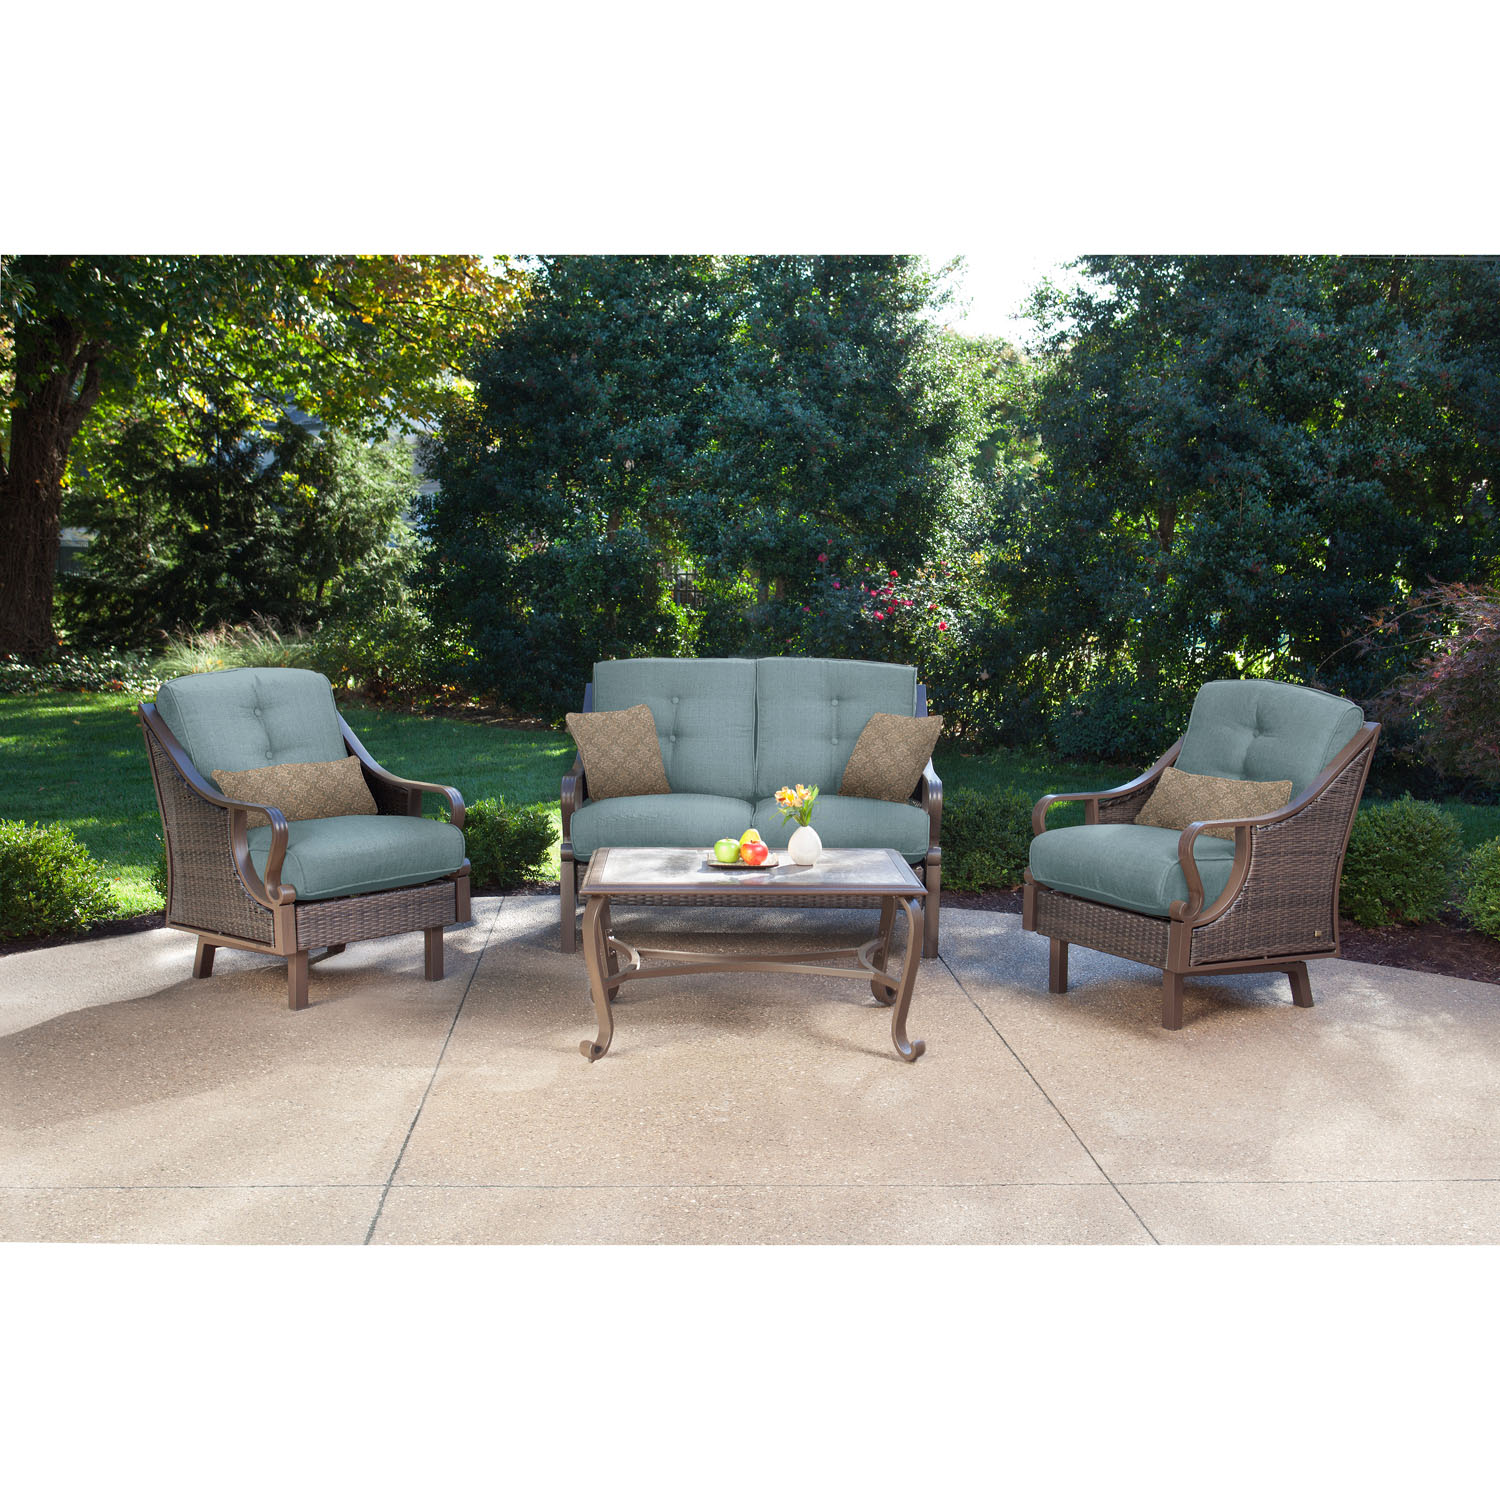 4-Piece Outdoor Patio Set